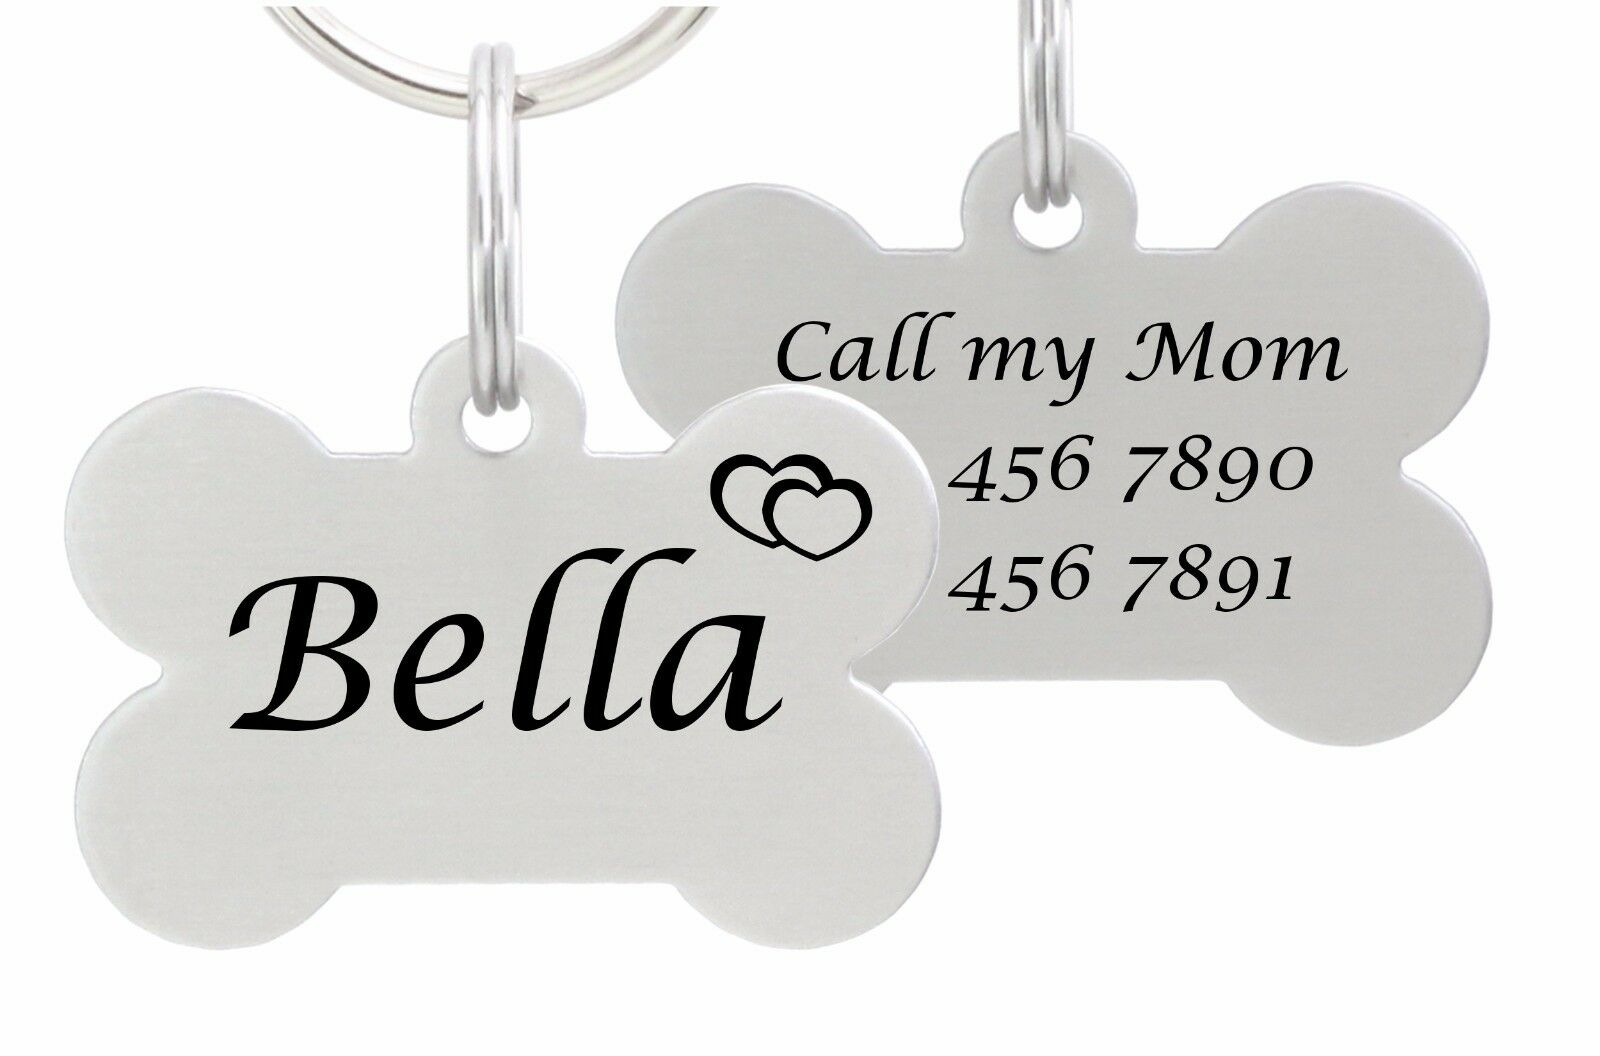 Double Sided Laser Etched Stainless Steel Pet ID Tag for Dog